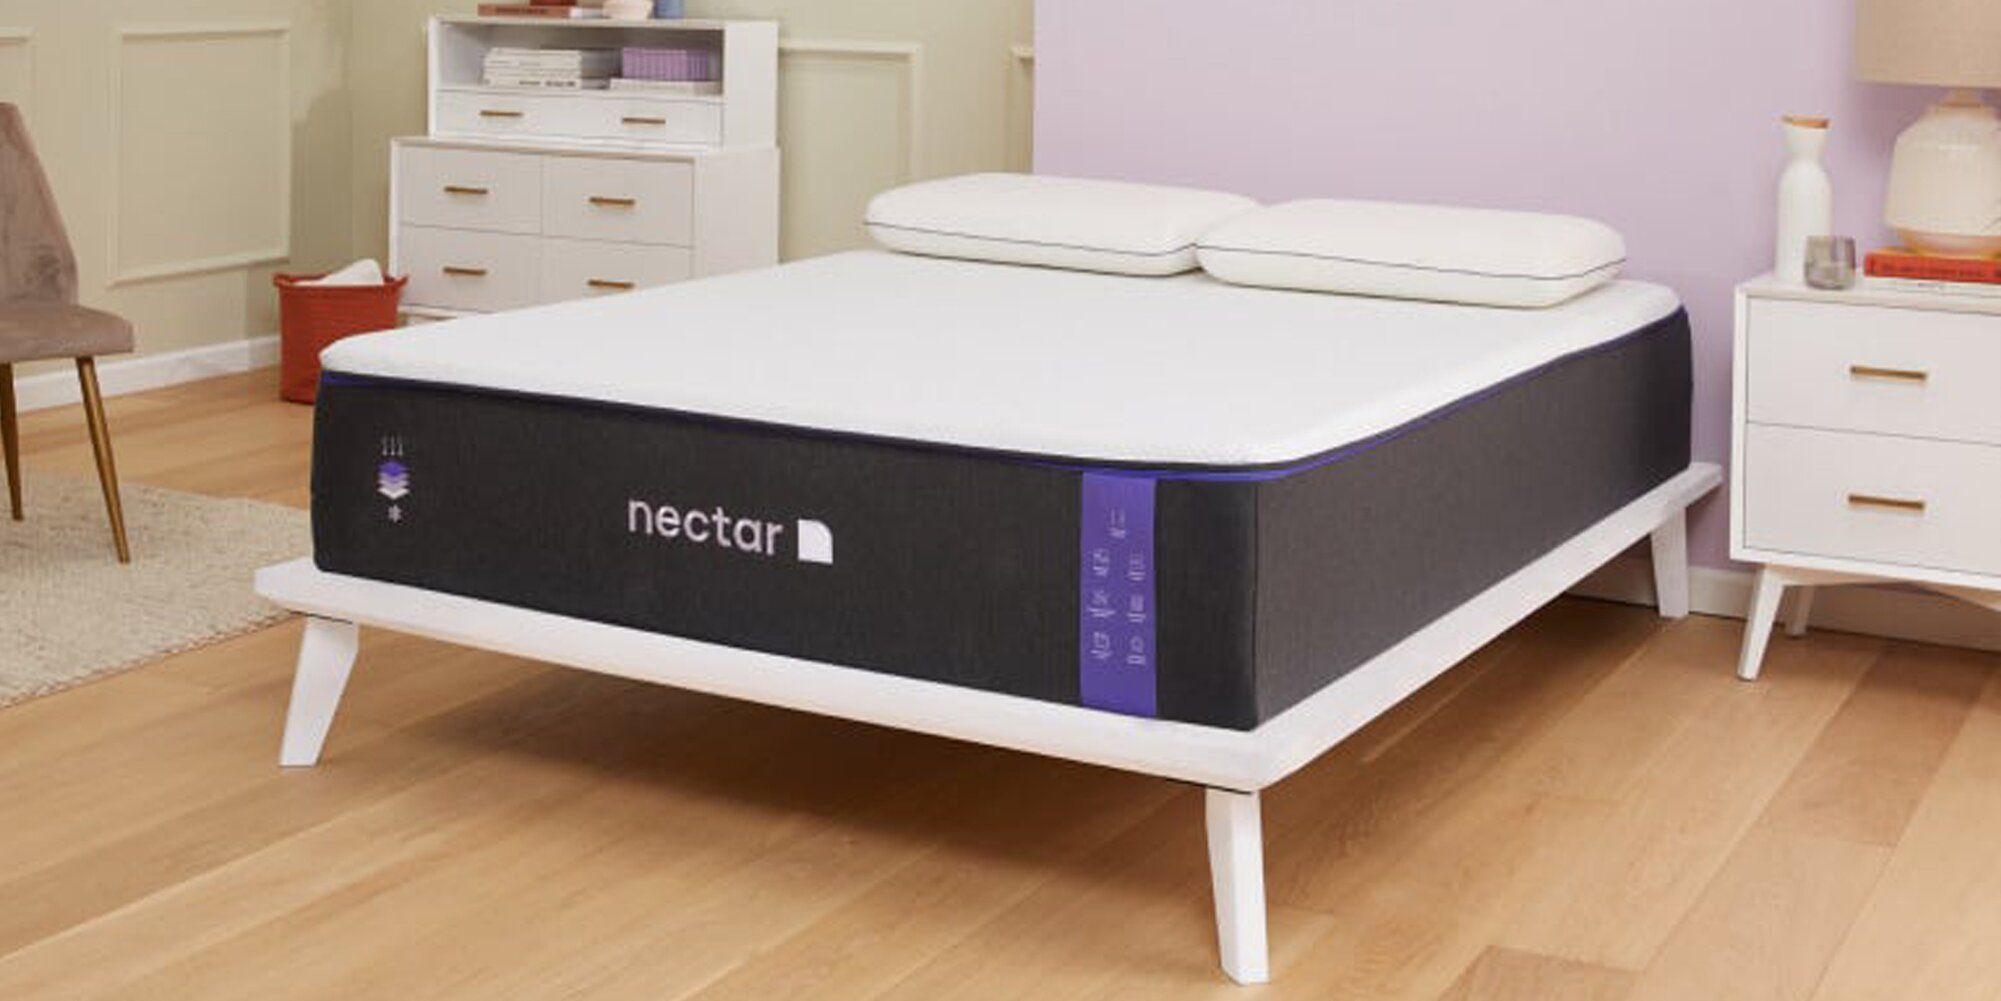 I'm a Hot Sleeper, and I Stay Cool All Night Thanks to This Memory Foam Mattress